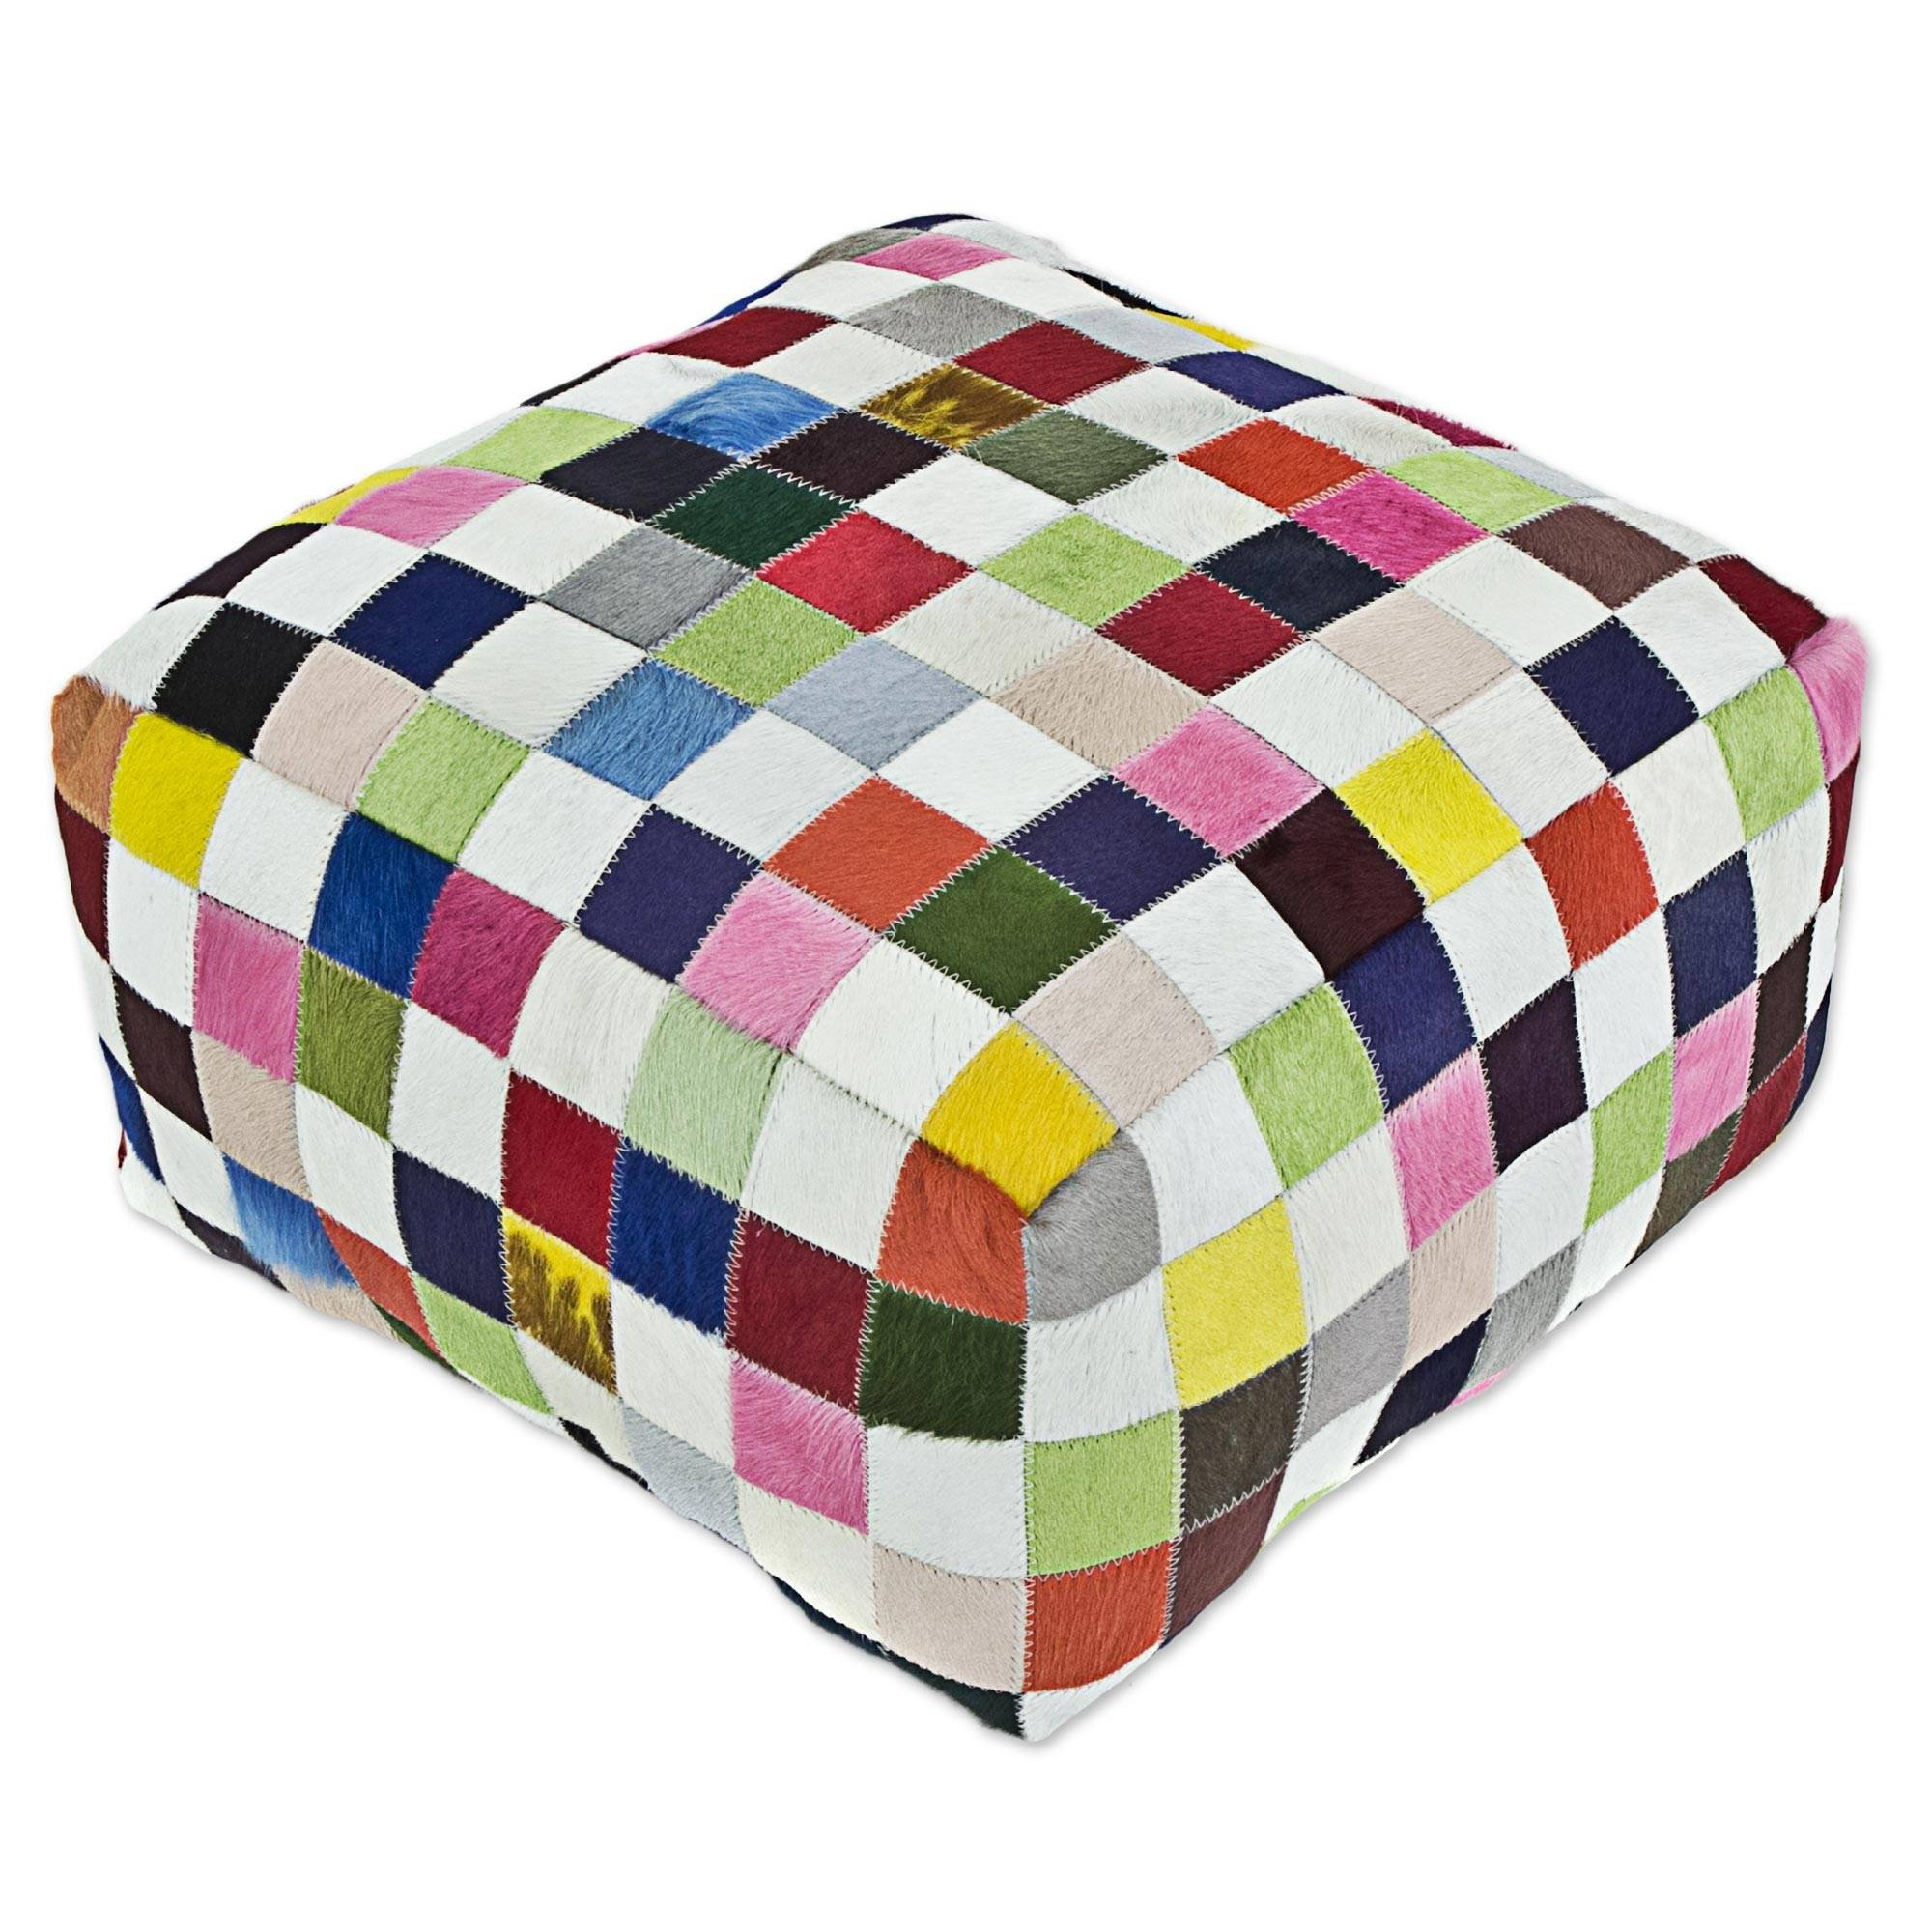 NOVICA Bohemian Leather Ottoman Covers, Multicolor, 'Carnival Checkerboard' by NOVICA